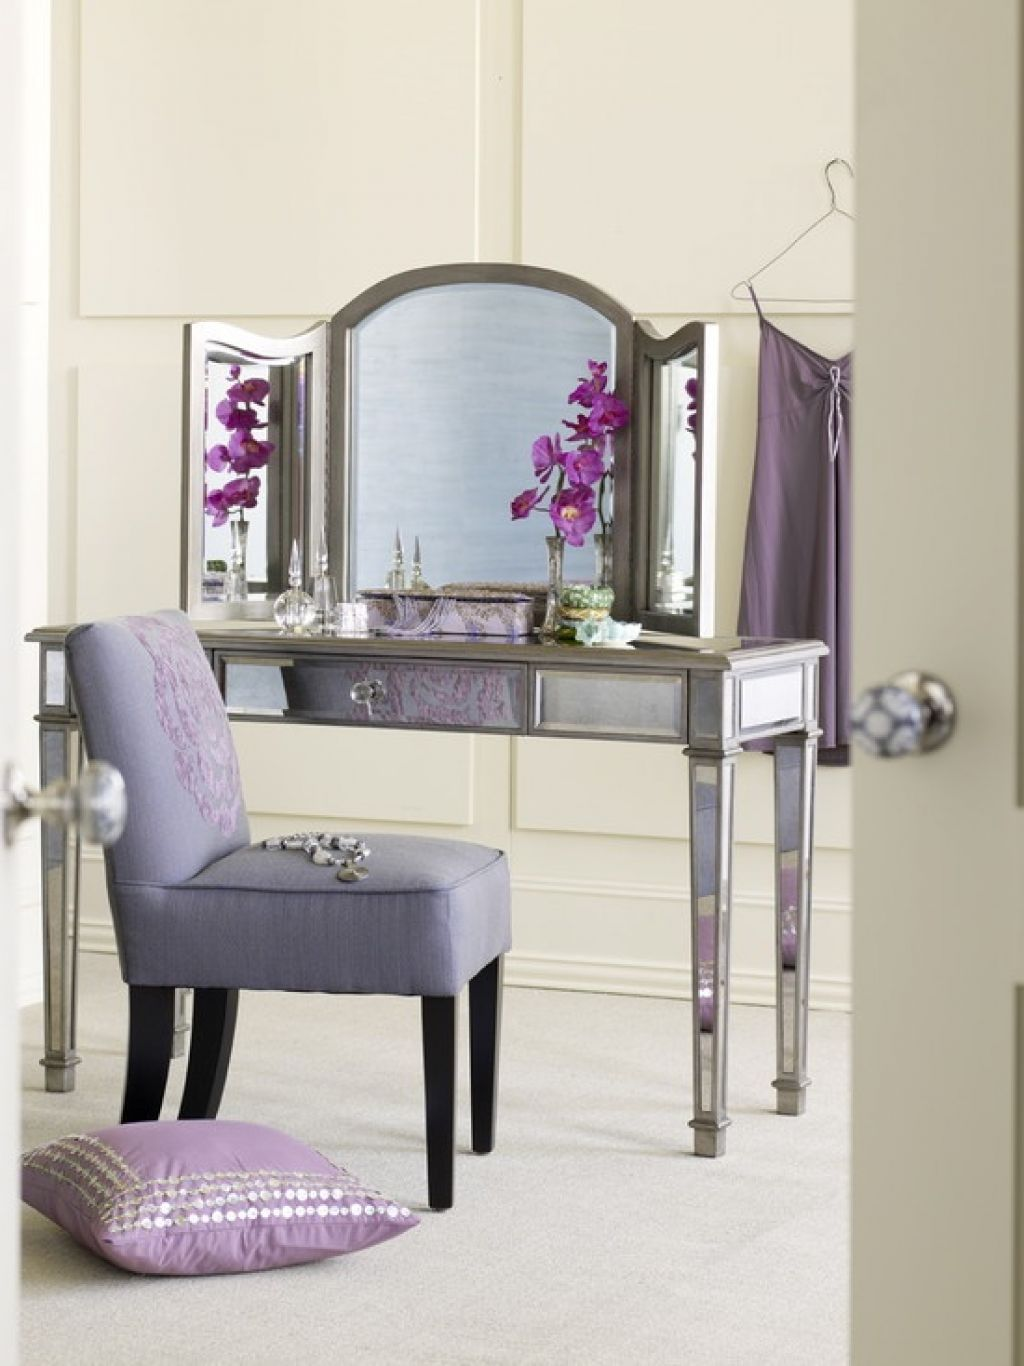 Charming hayworth vanity mirrored vanity and ikea vanity also ikea rug hayworth rug ideas